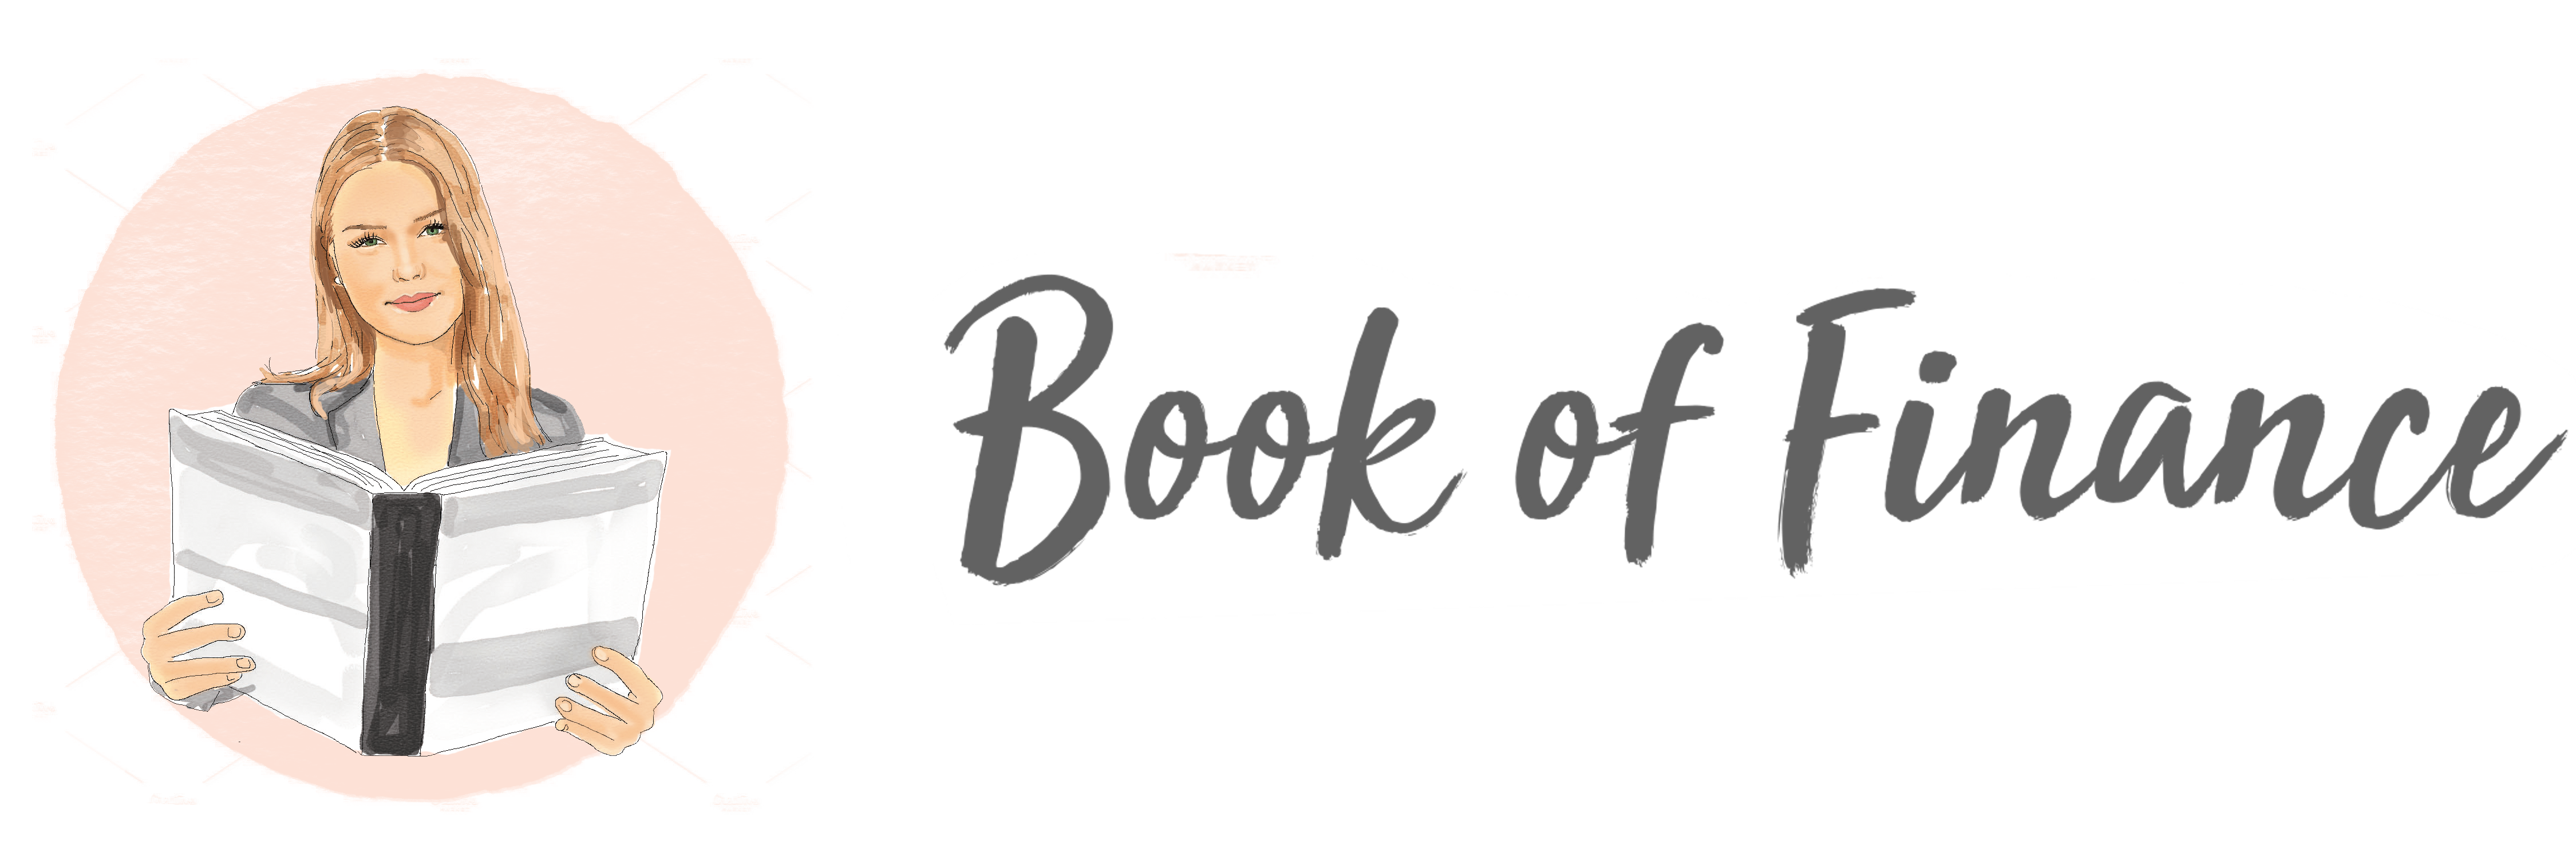 BOOK OF FINANCE